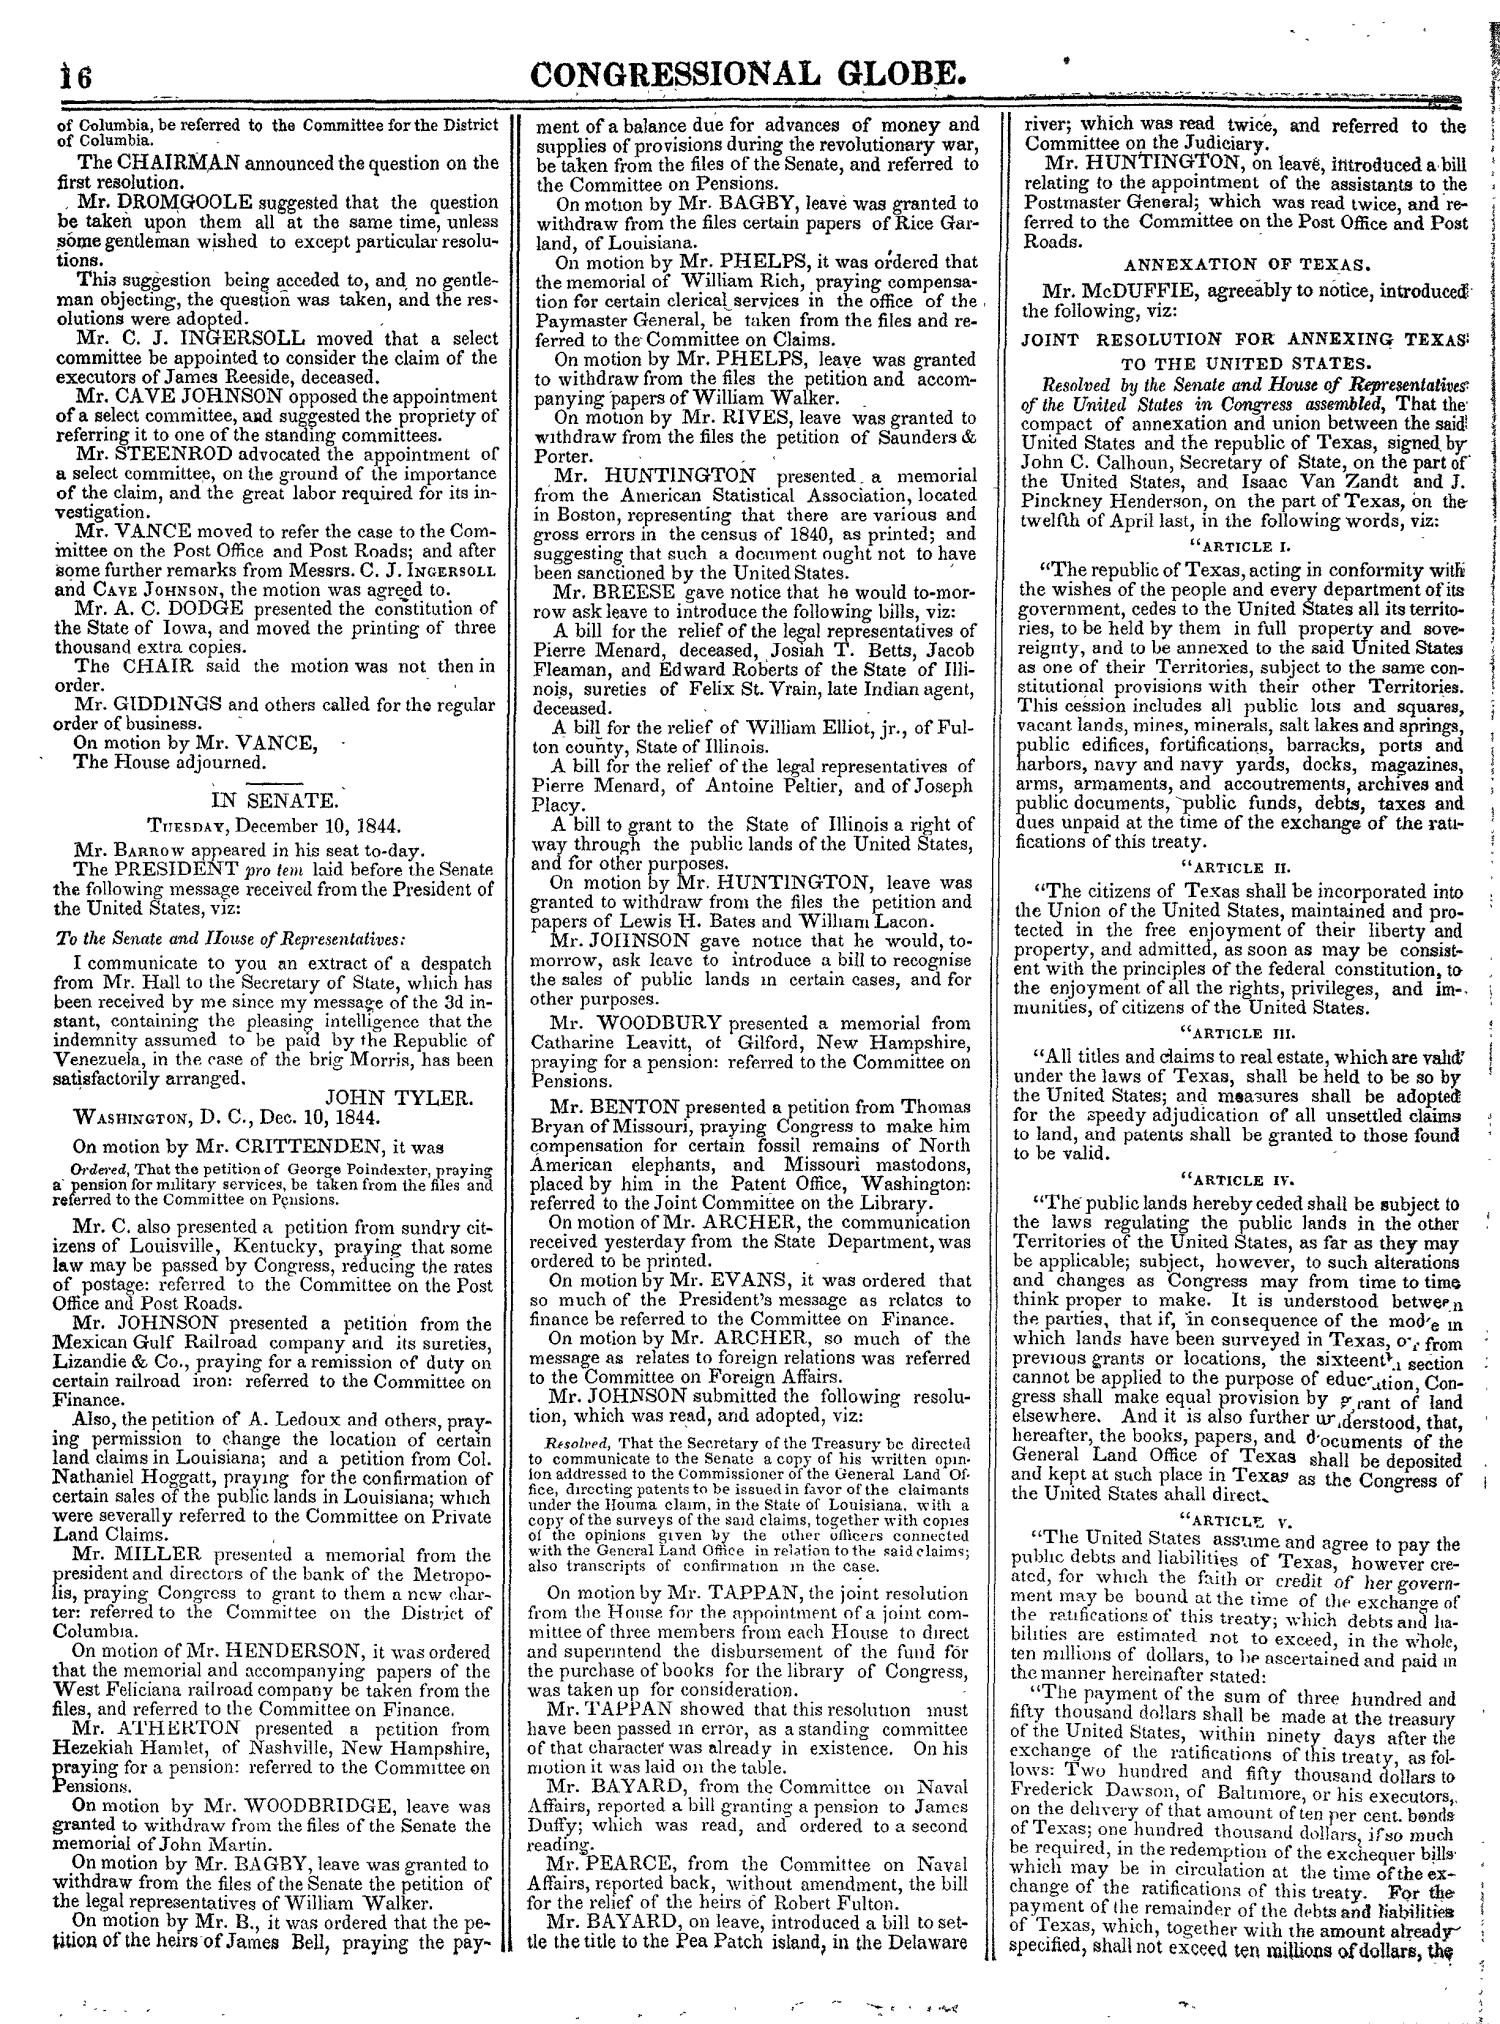 The Congressional Globe, Volume 14: Twenty-Eighth Congress, Second Session                                                                                                      16